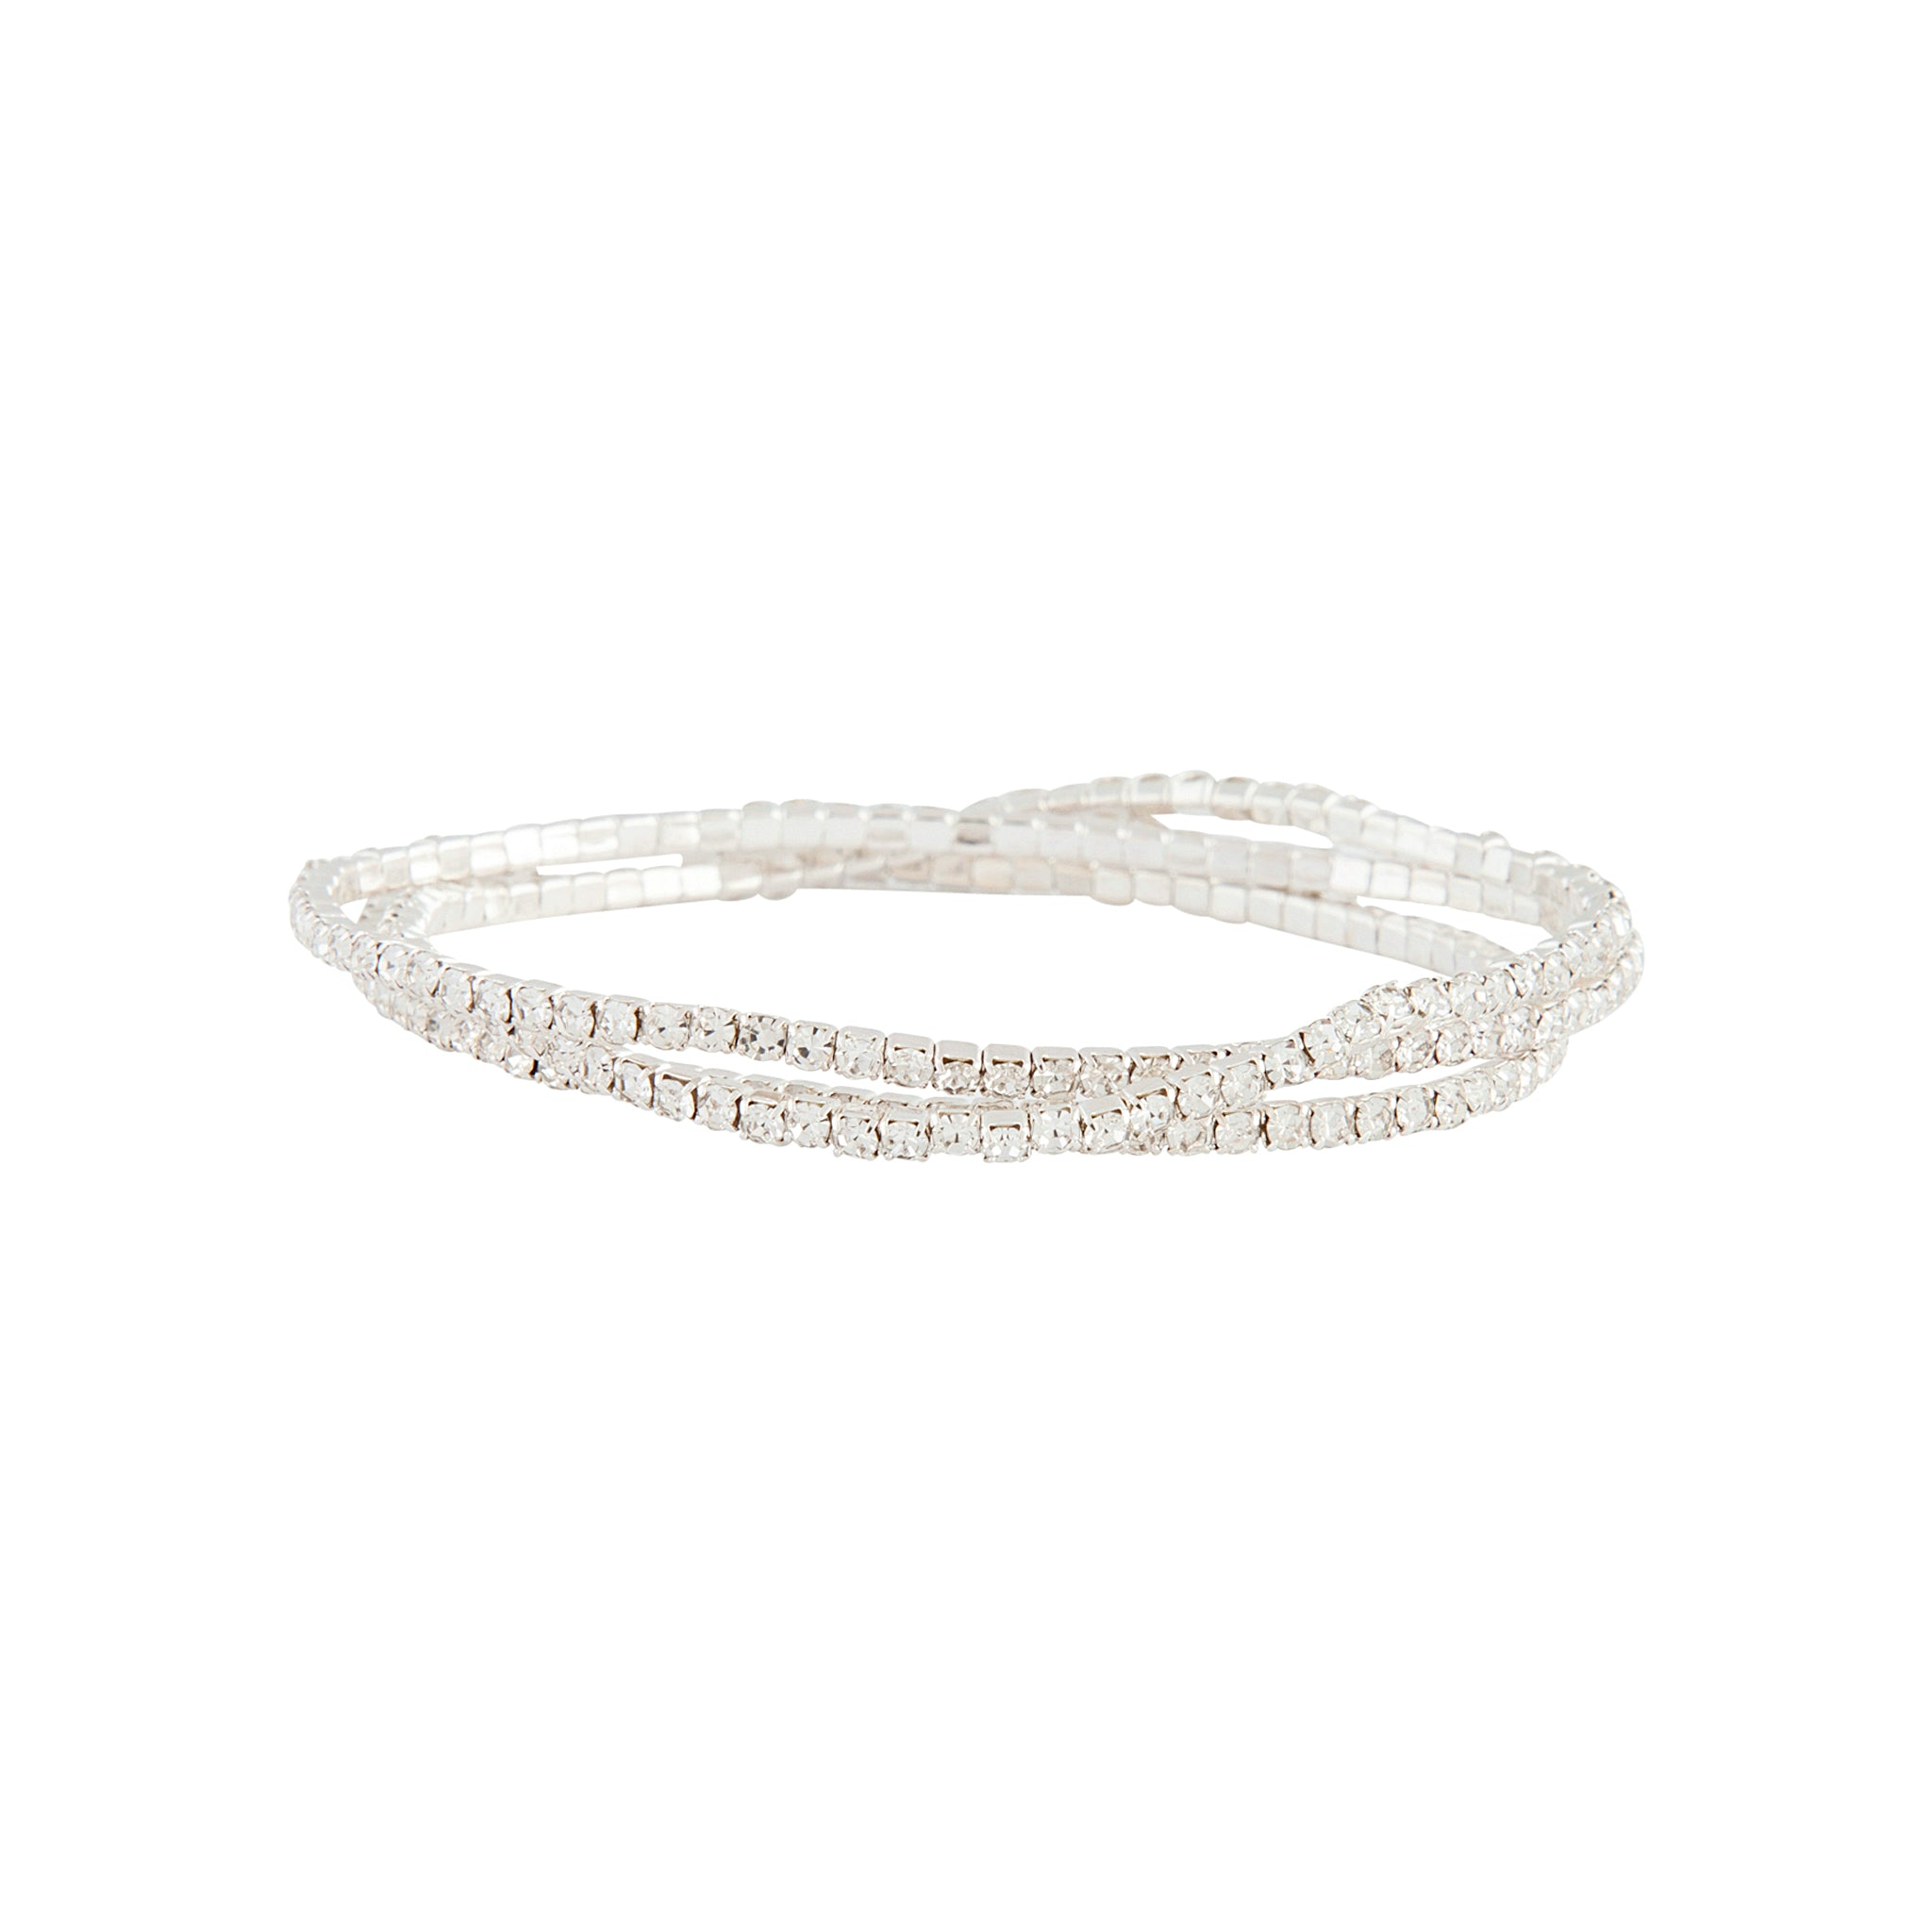 Silver Cup Chain Bracelet 3 Pack